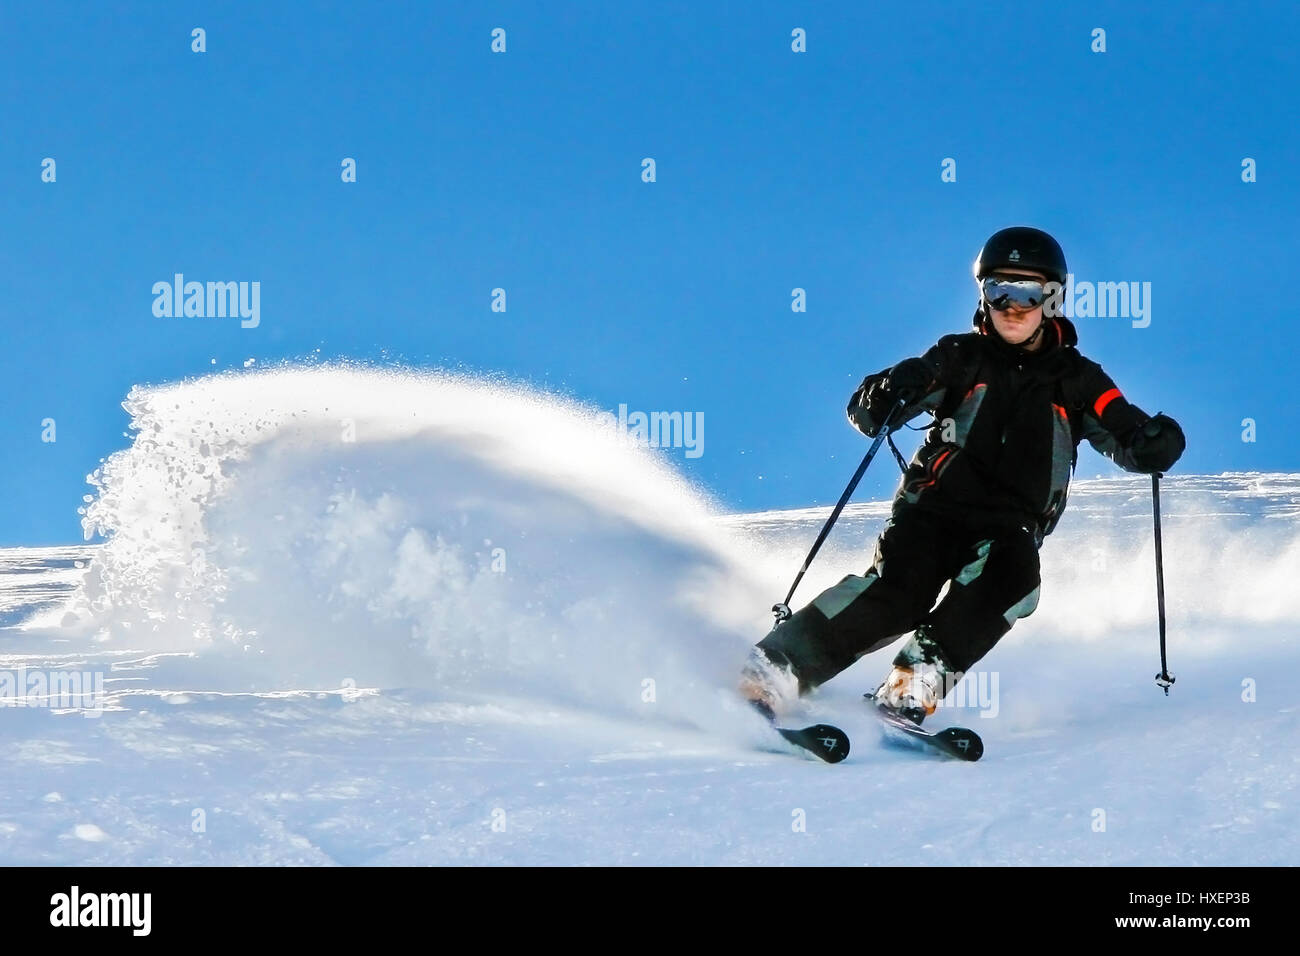 Skier enjoying the fine winter weather and great skiing conditions in Solden, Austria - Stock Image